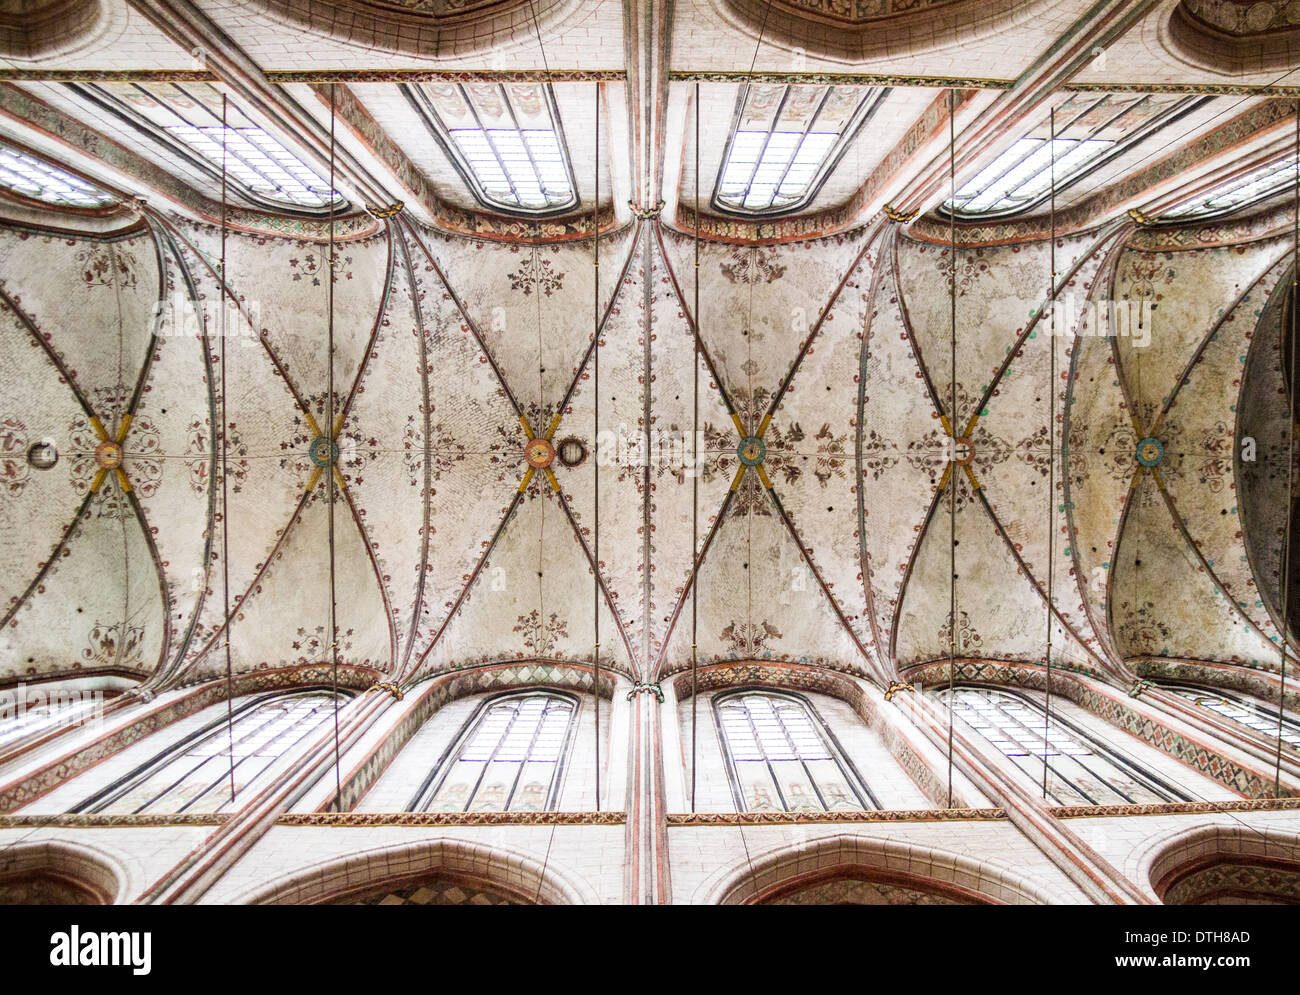 Roof of St. Mary's Church Marienkirche Lubeck Germany - Stock Image